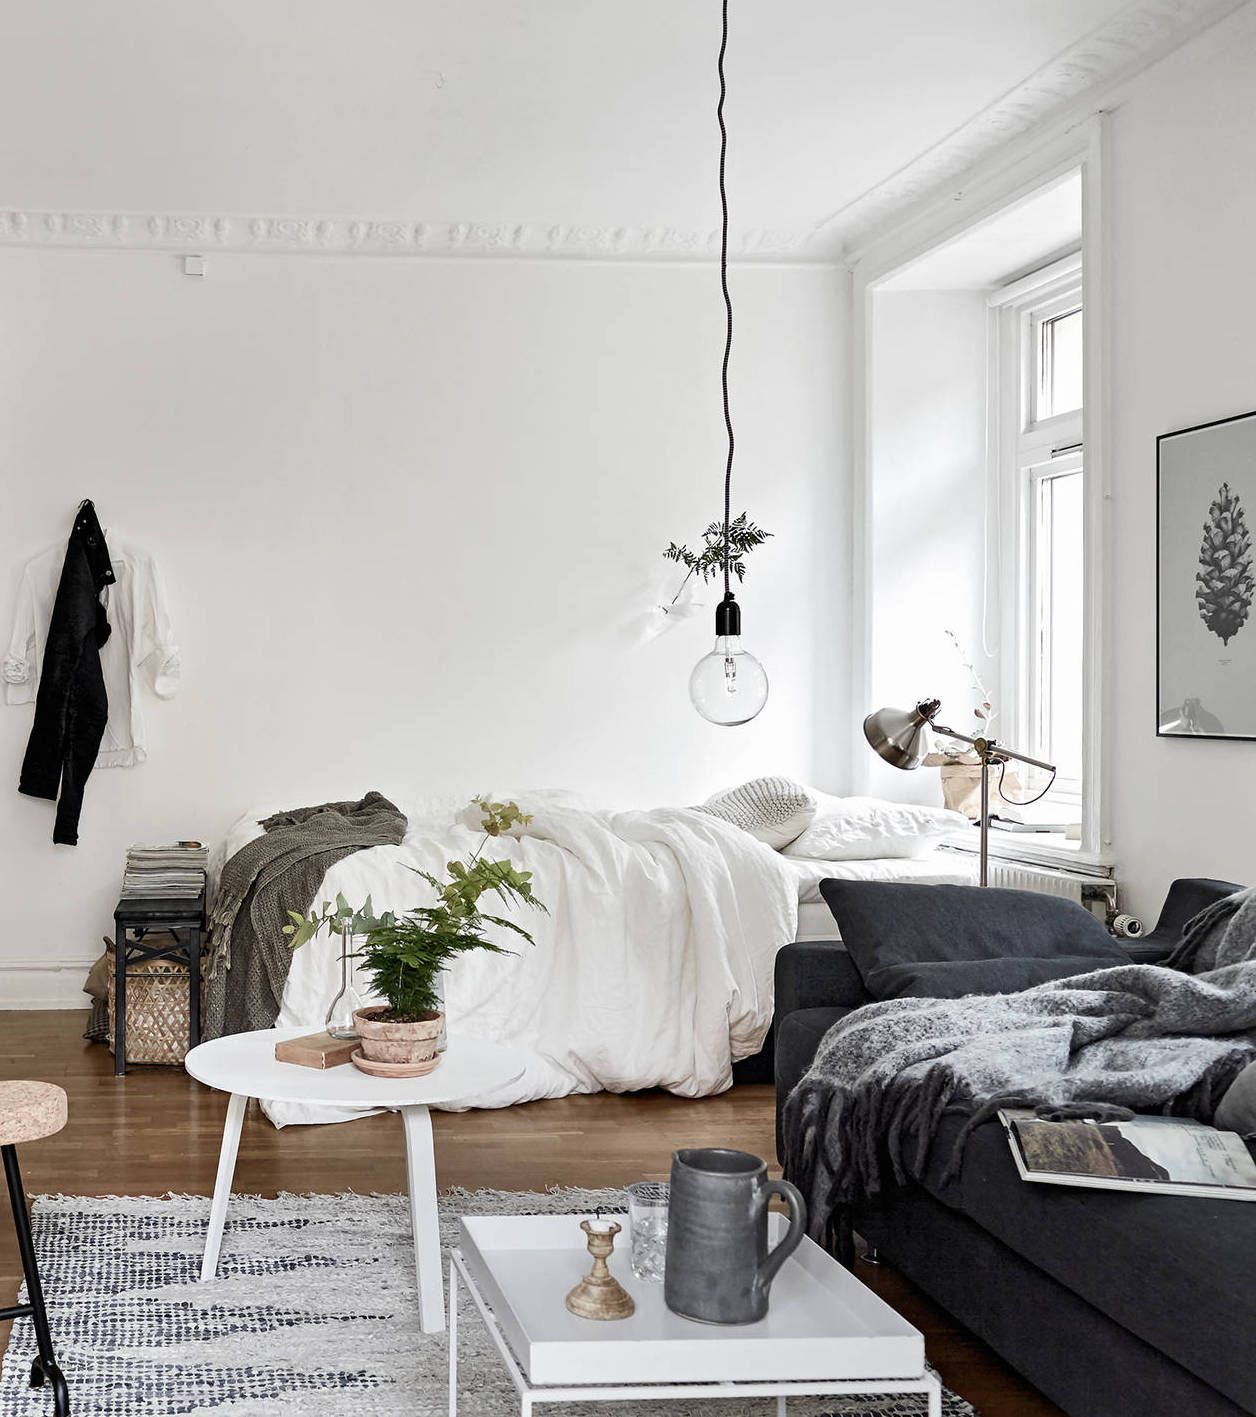 Cozy One Room Flat One Room Flat Apartment Interior Bedroom